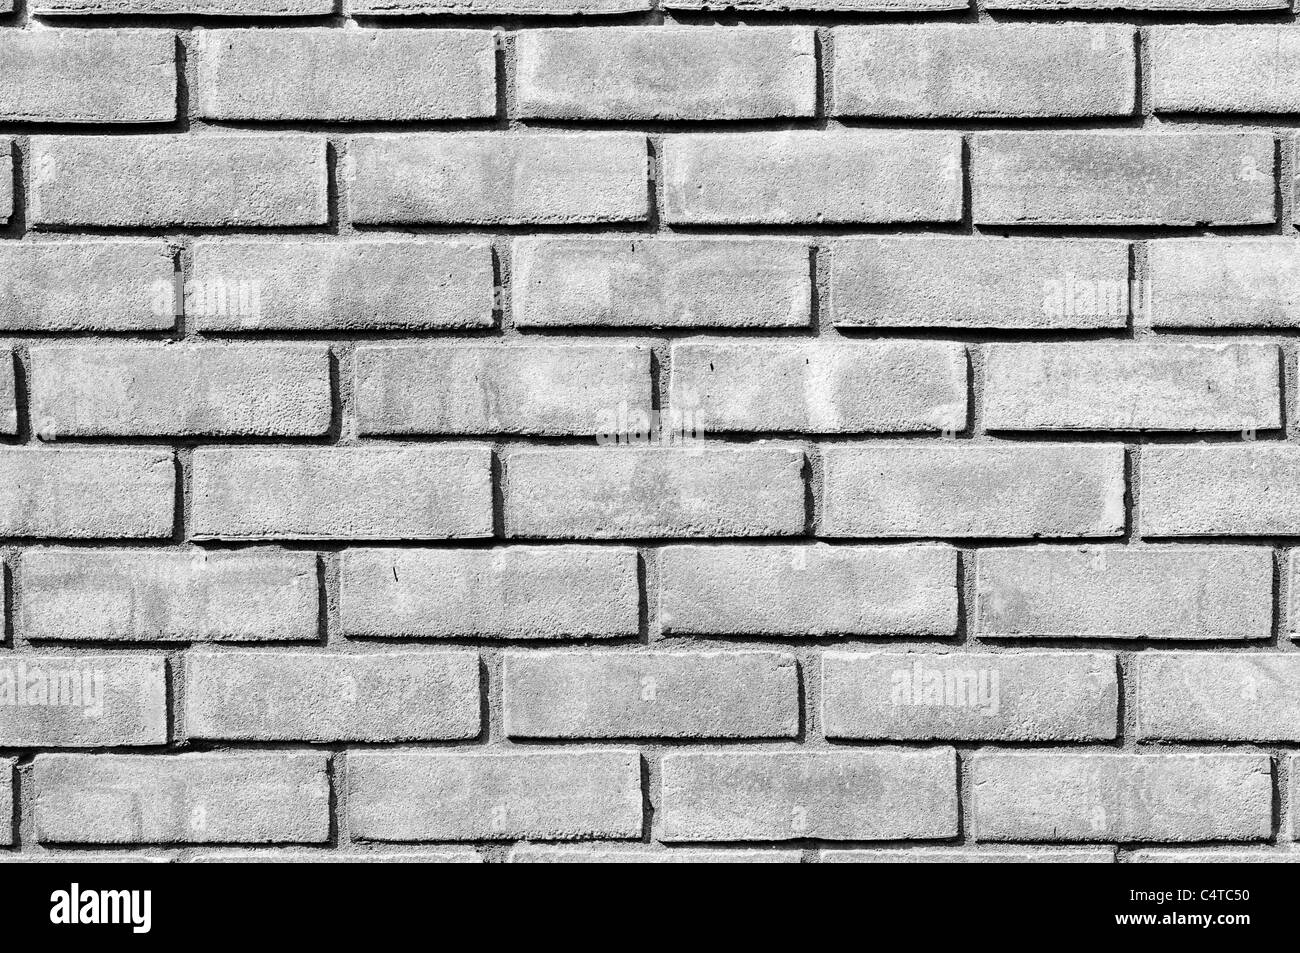 Plain wood table with hipster brick wall background stock photo - A Monochrome Black And White Close Up Photo Of A Plain Brick Wall Made Of